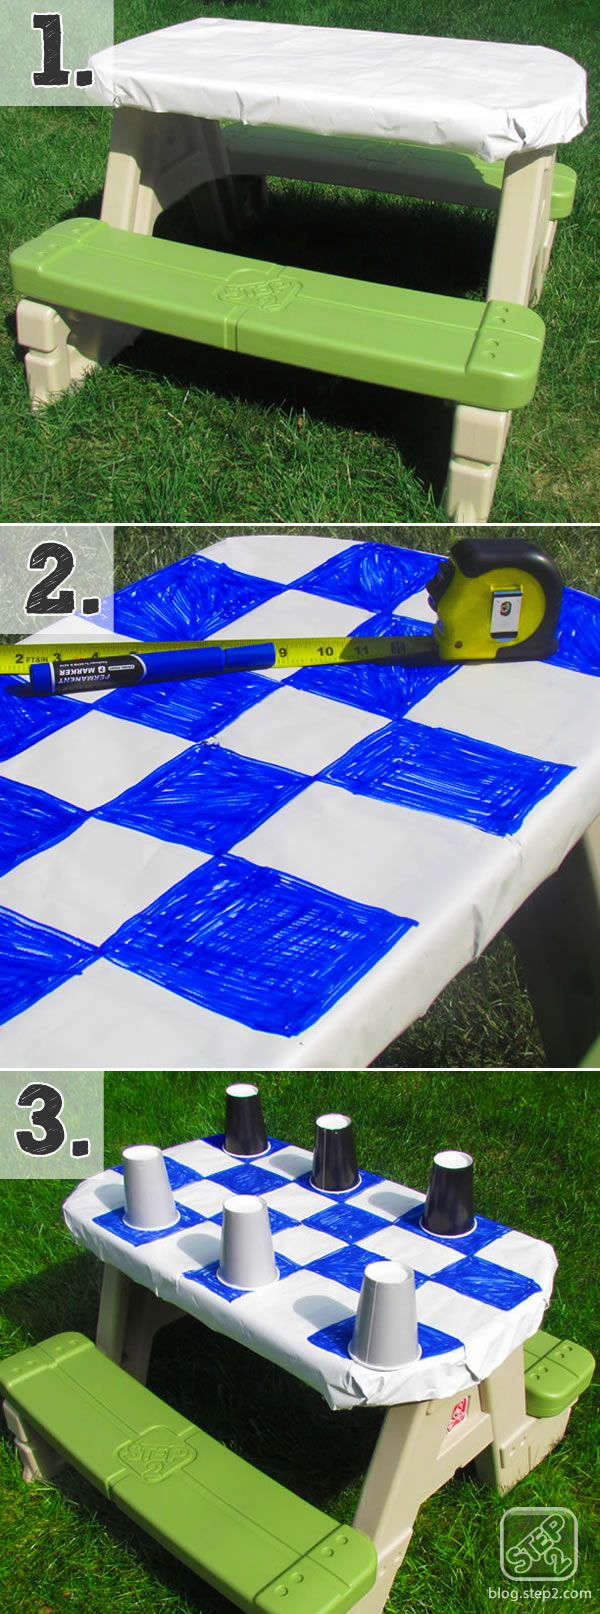 checkerboard tutorial